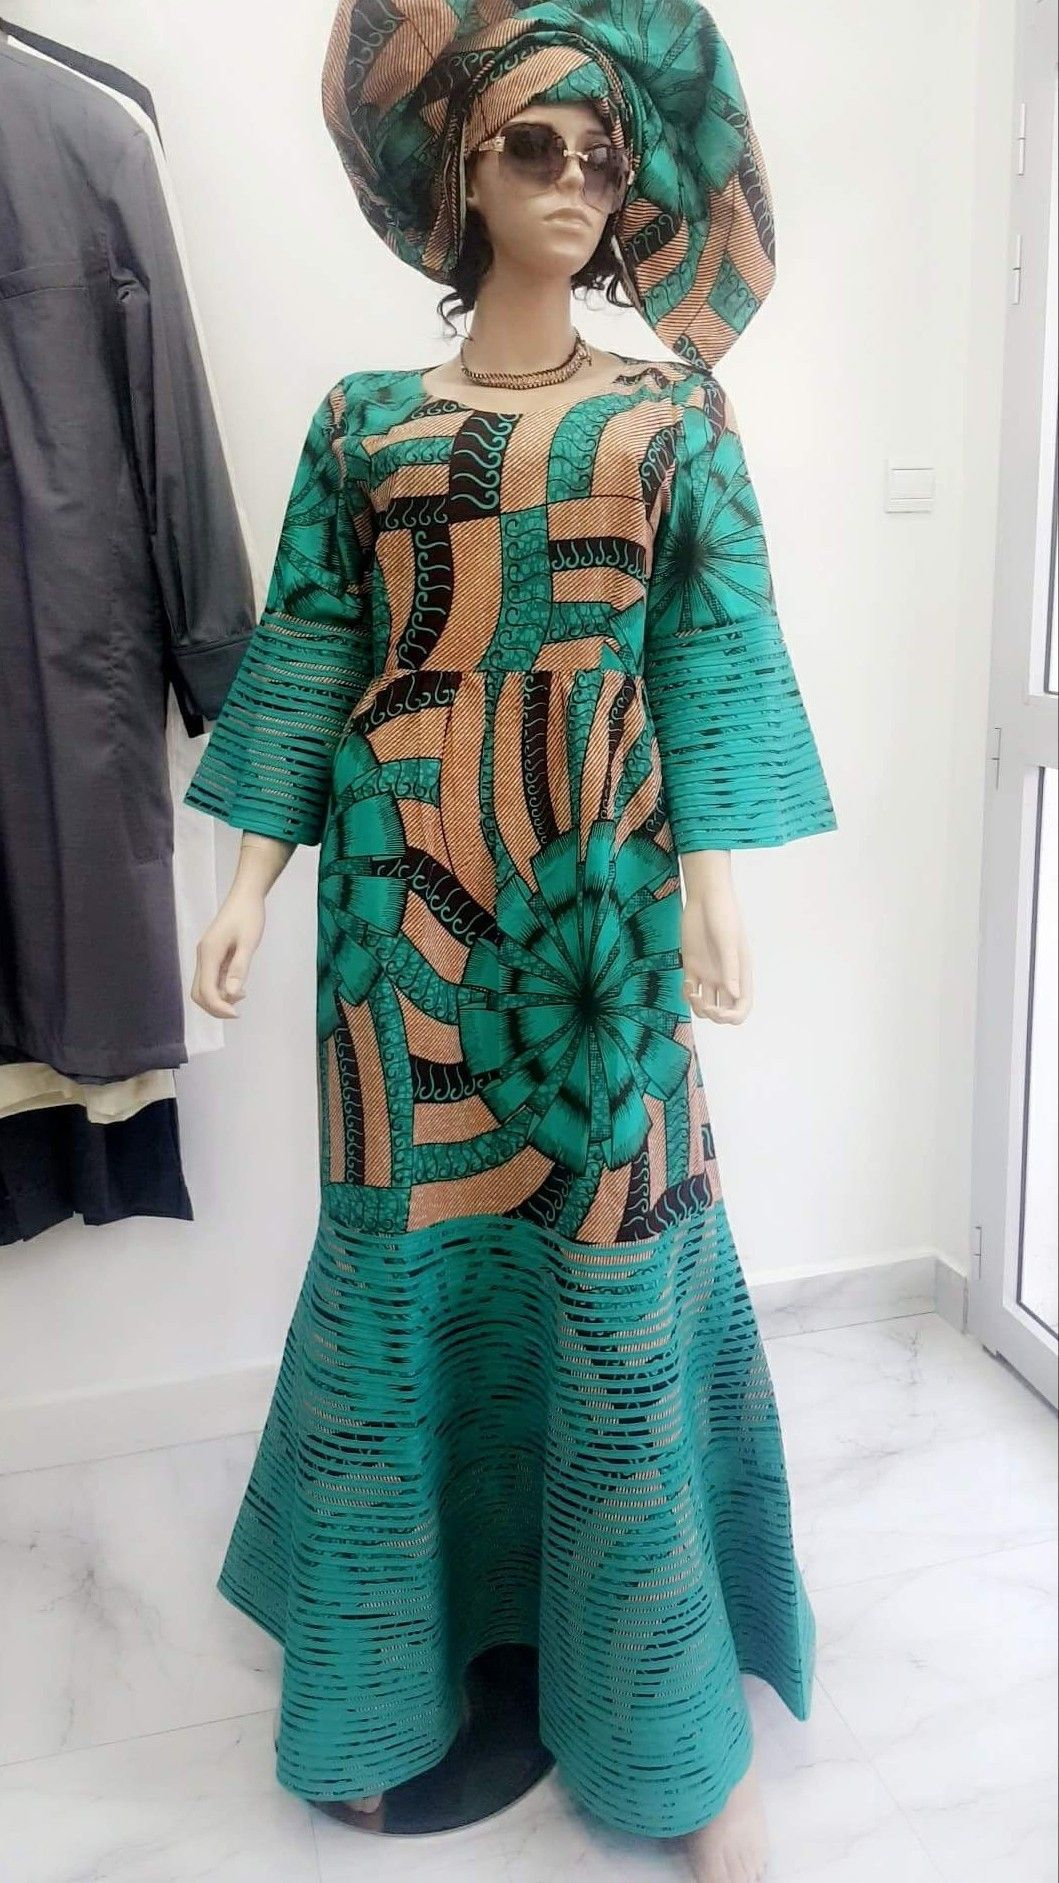 Pagnes robe | Mode africaine